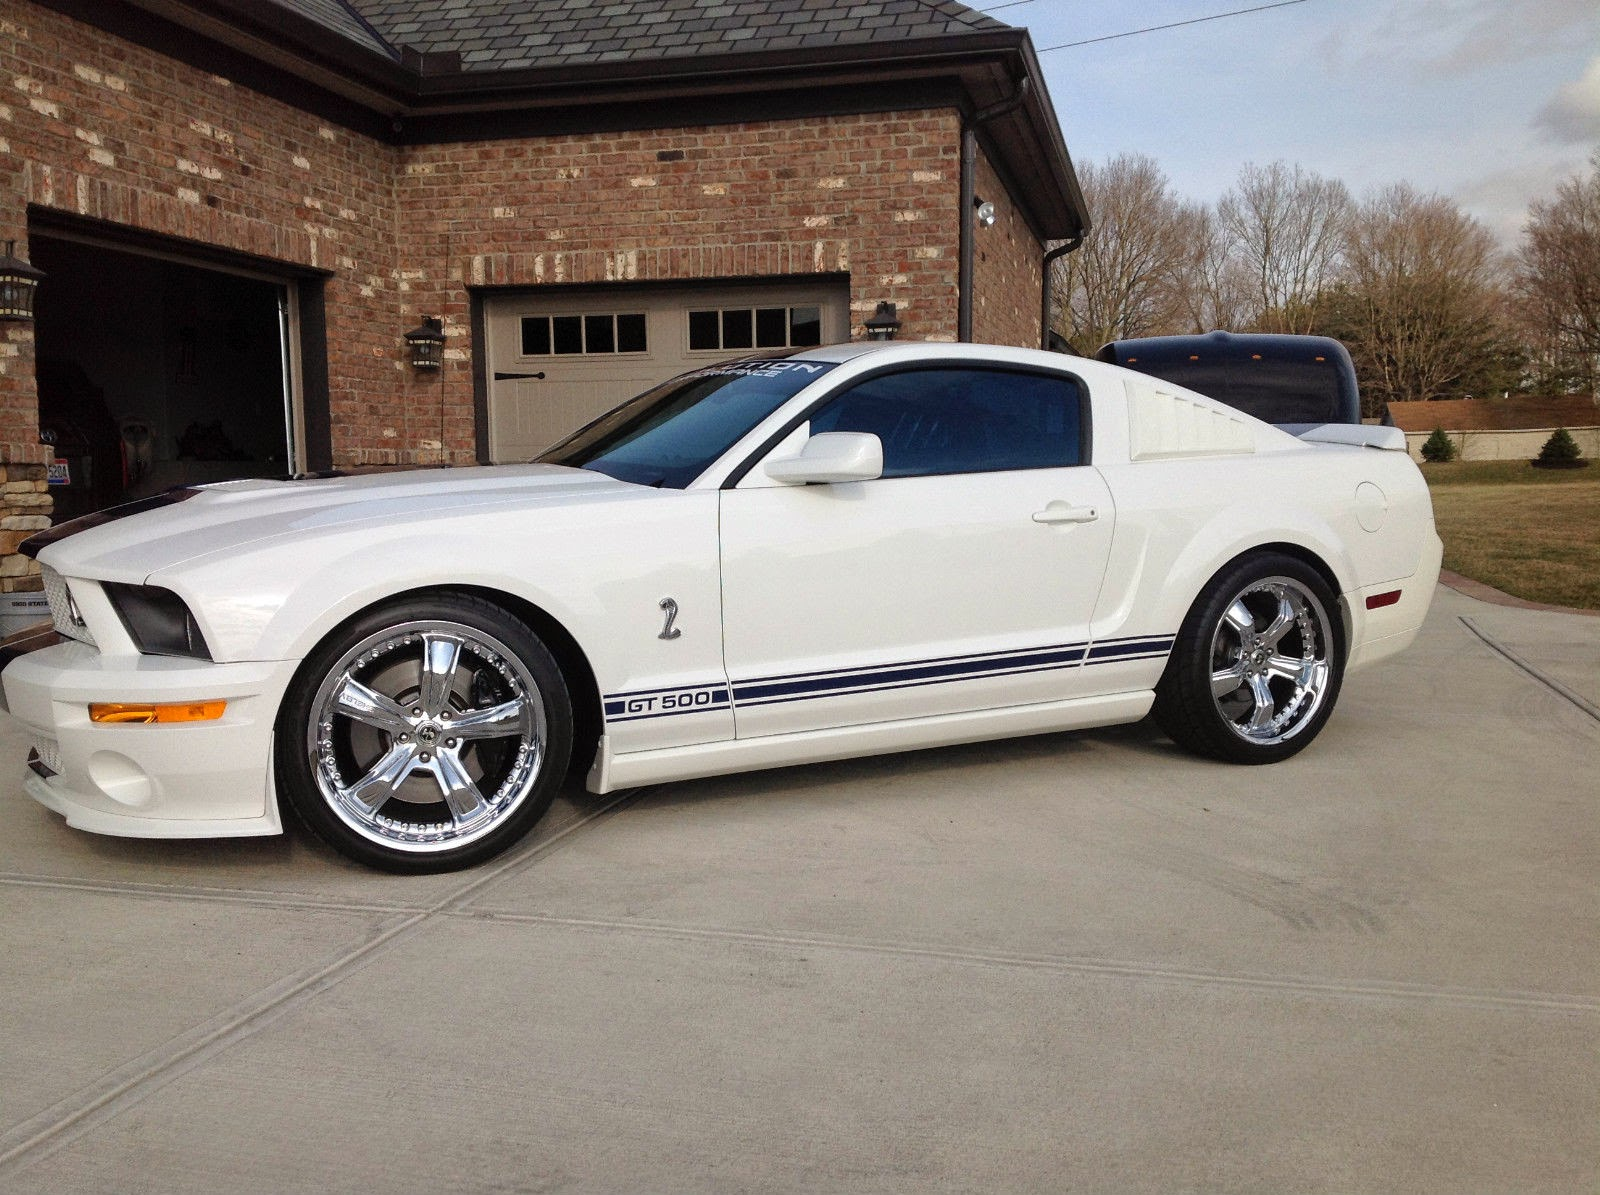 2007 ford mustang shelby gt 500 for sale american muscle cars. Black Bedroom Furniture Sets. Home Design Ideas